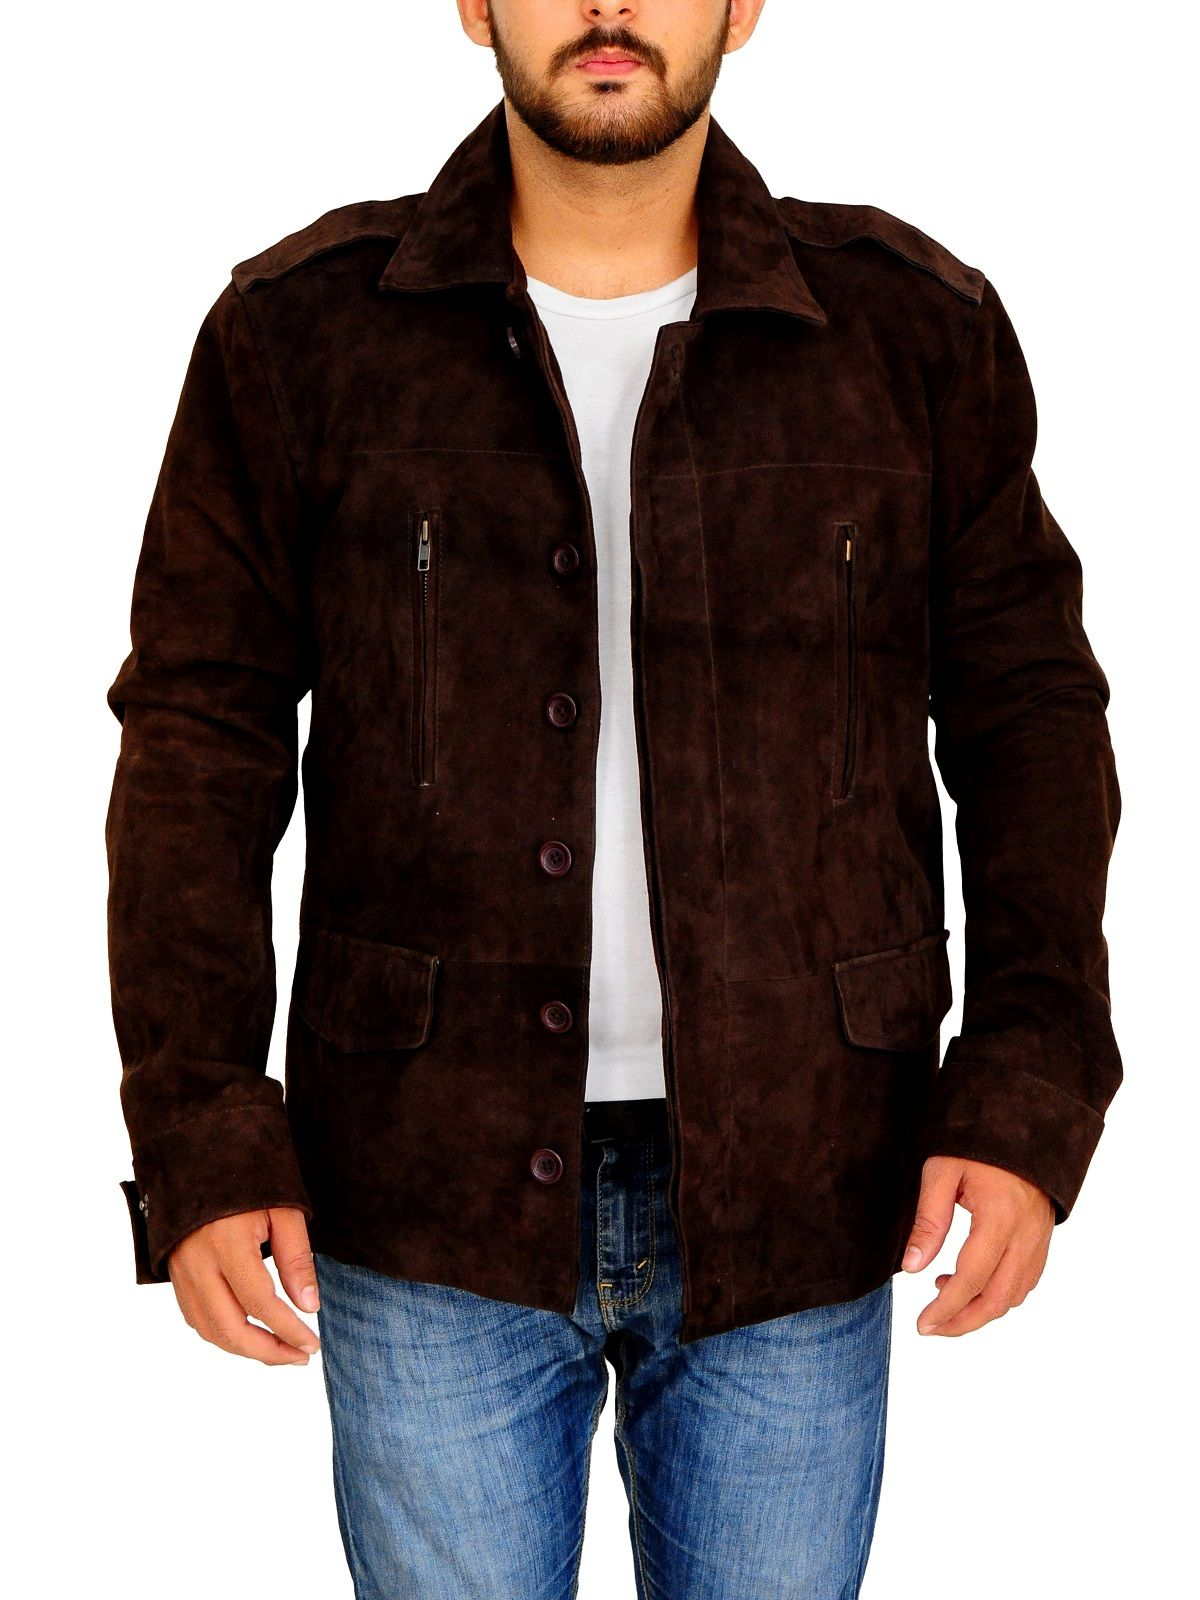 4dfbc5c7d Fifty Shades Dark Brown Leather Jacket | FIFTY SHADES DARK BROWN ...